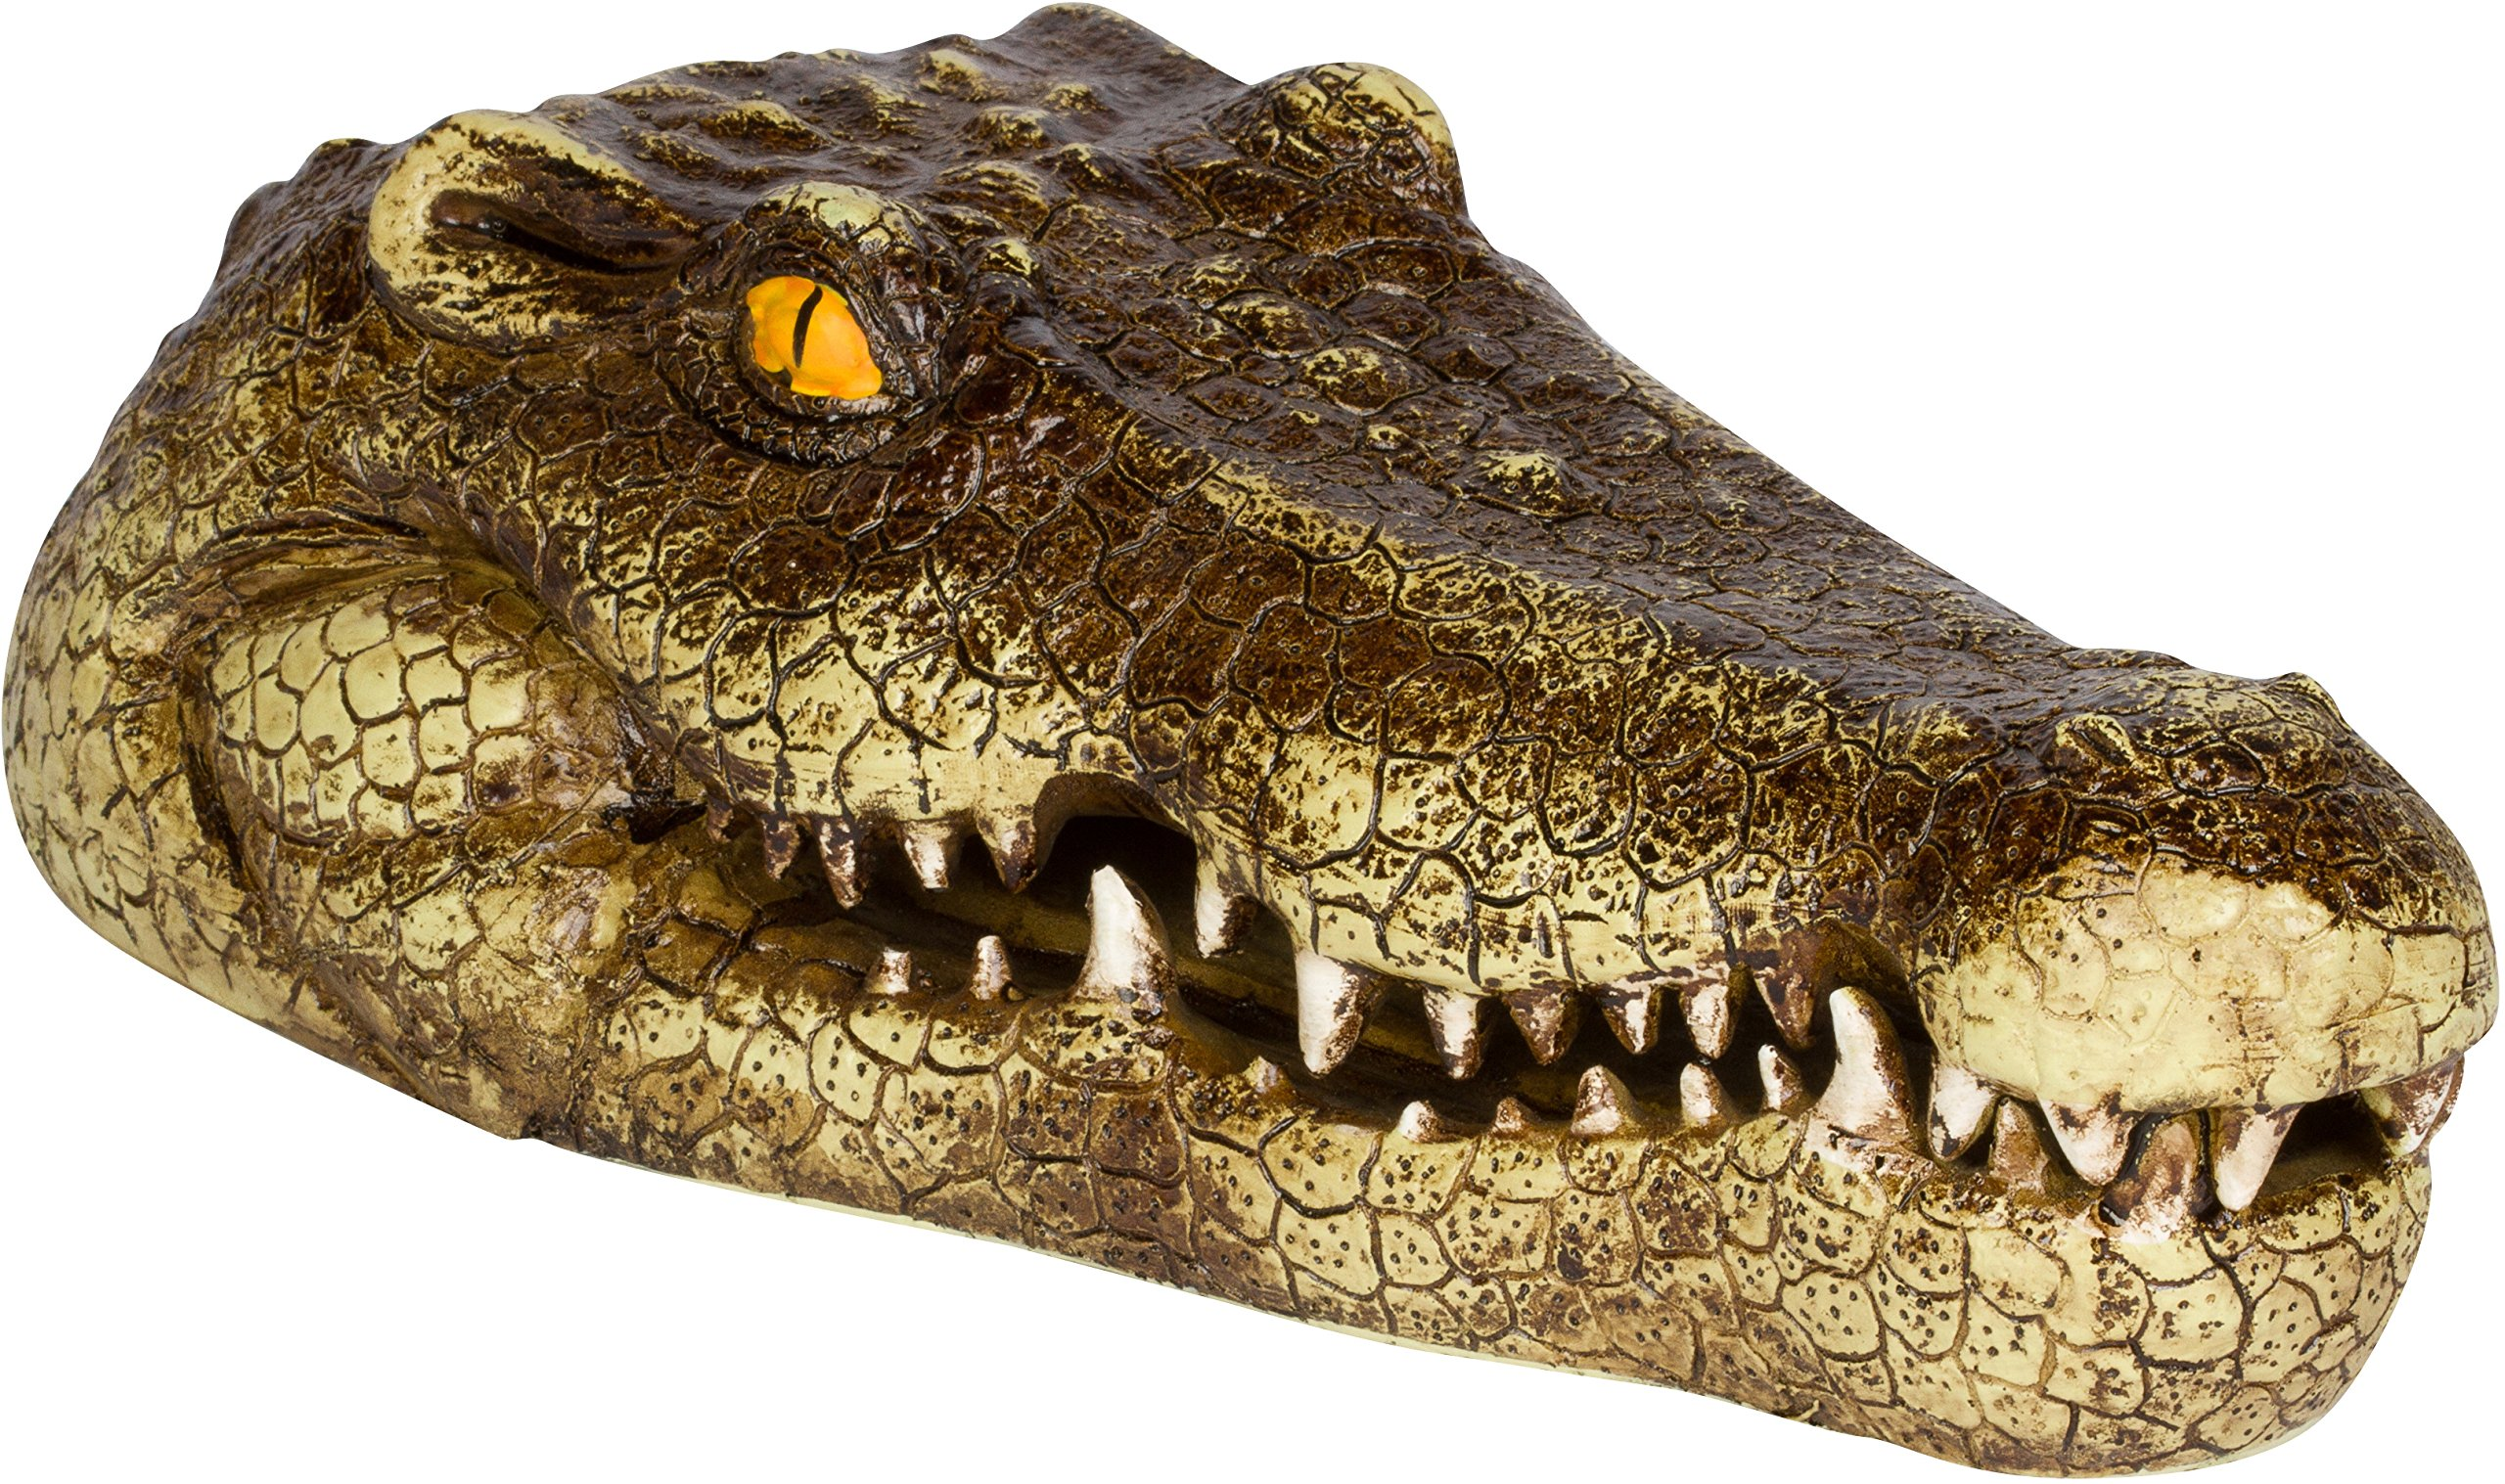 Trademark Innovations 11'' Fake Alligator Head Pool Float Blue Heron Decoy for Ponds, and Water Features by